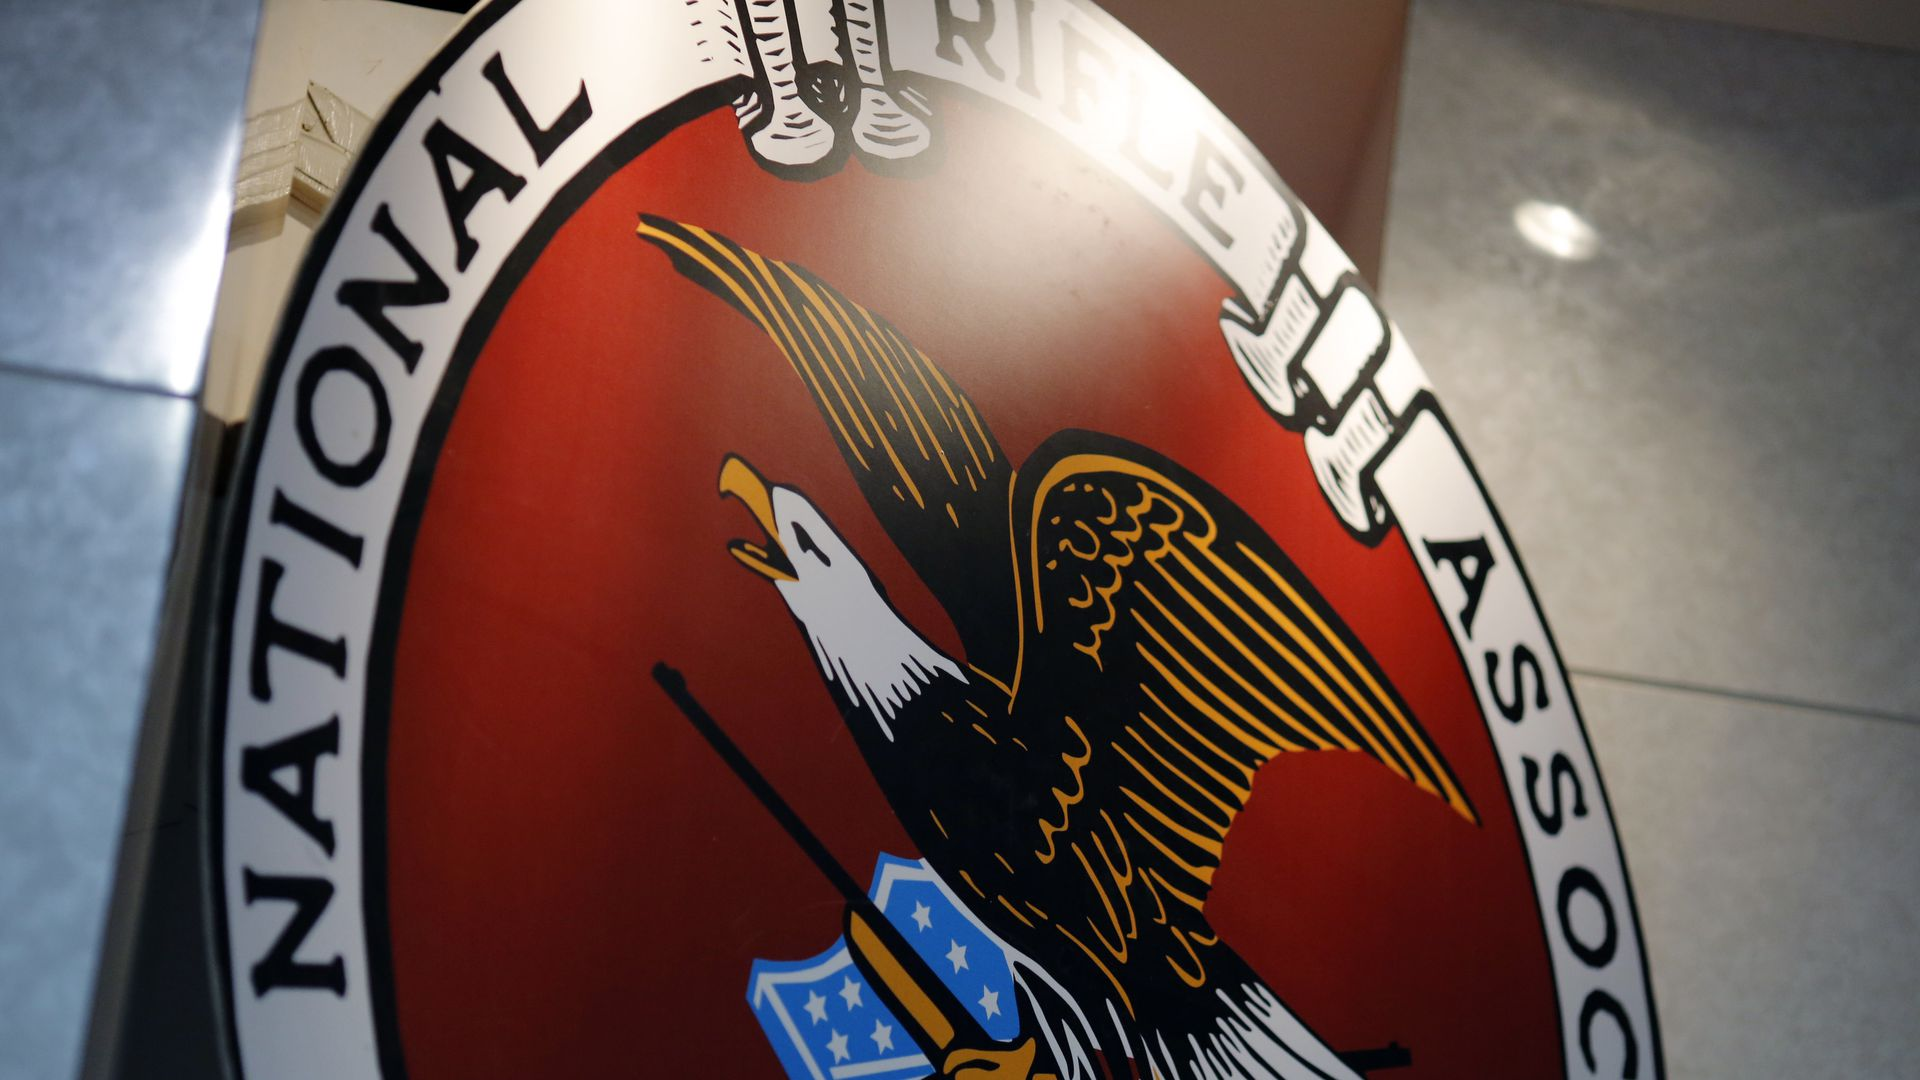 This is a close up of a large NRA logo.